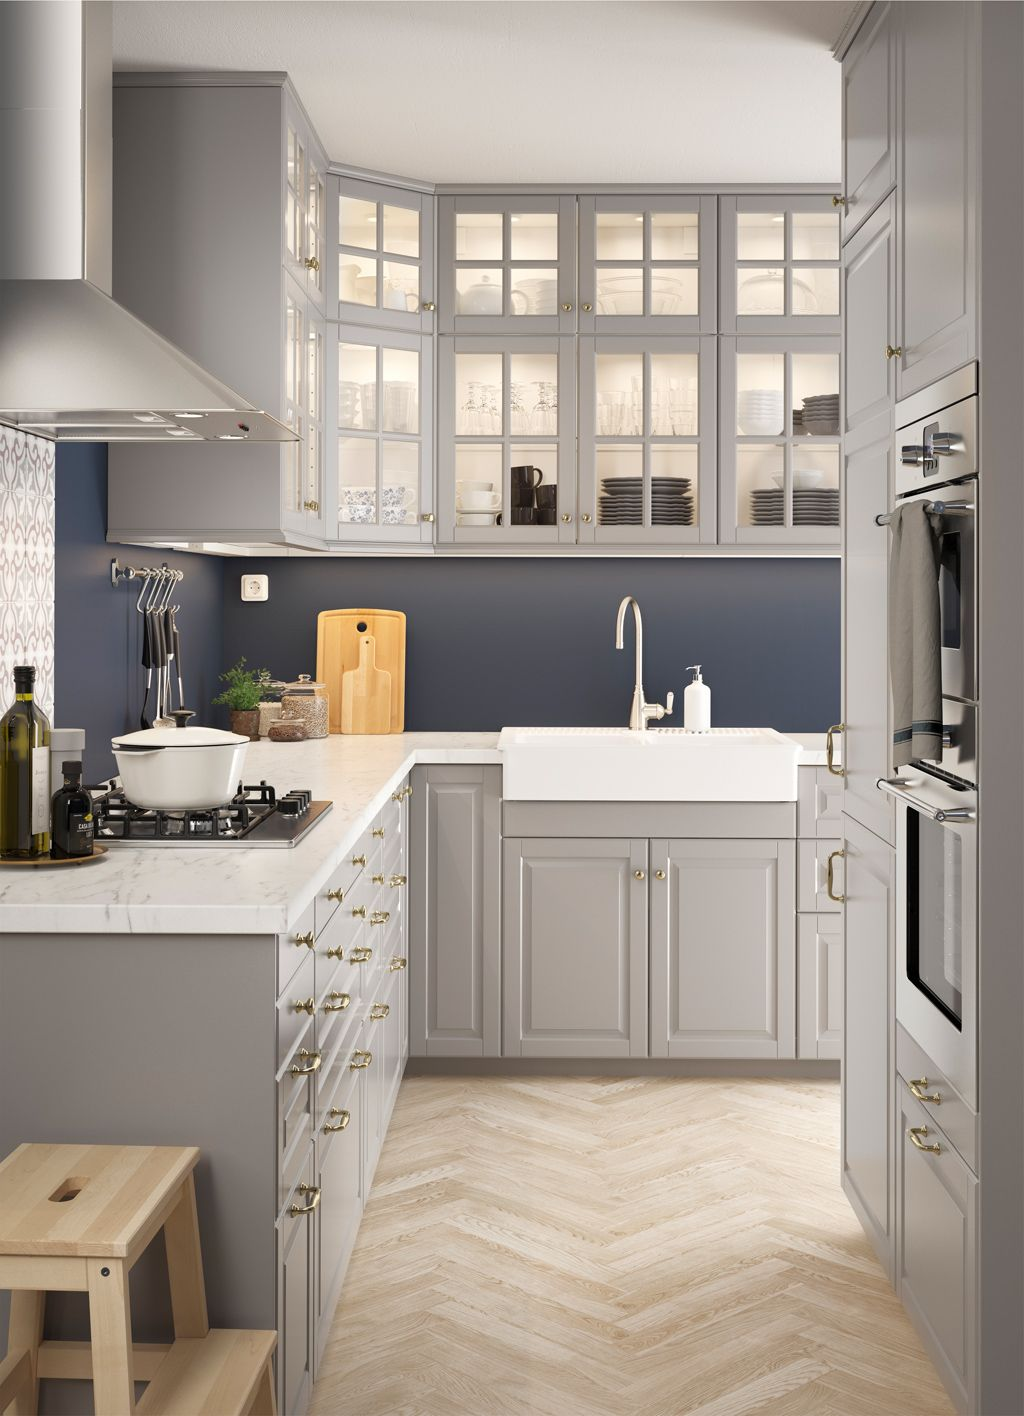 Ikea Kitchen Cabinet Doors Home Depot Hardware L Shaped With Traditional Wall And Base Cabinets